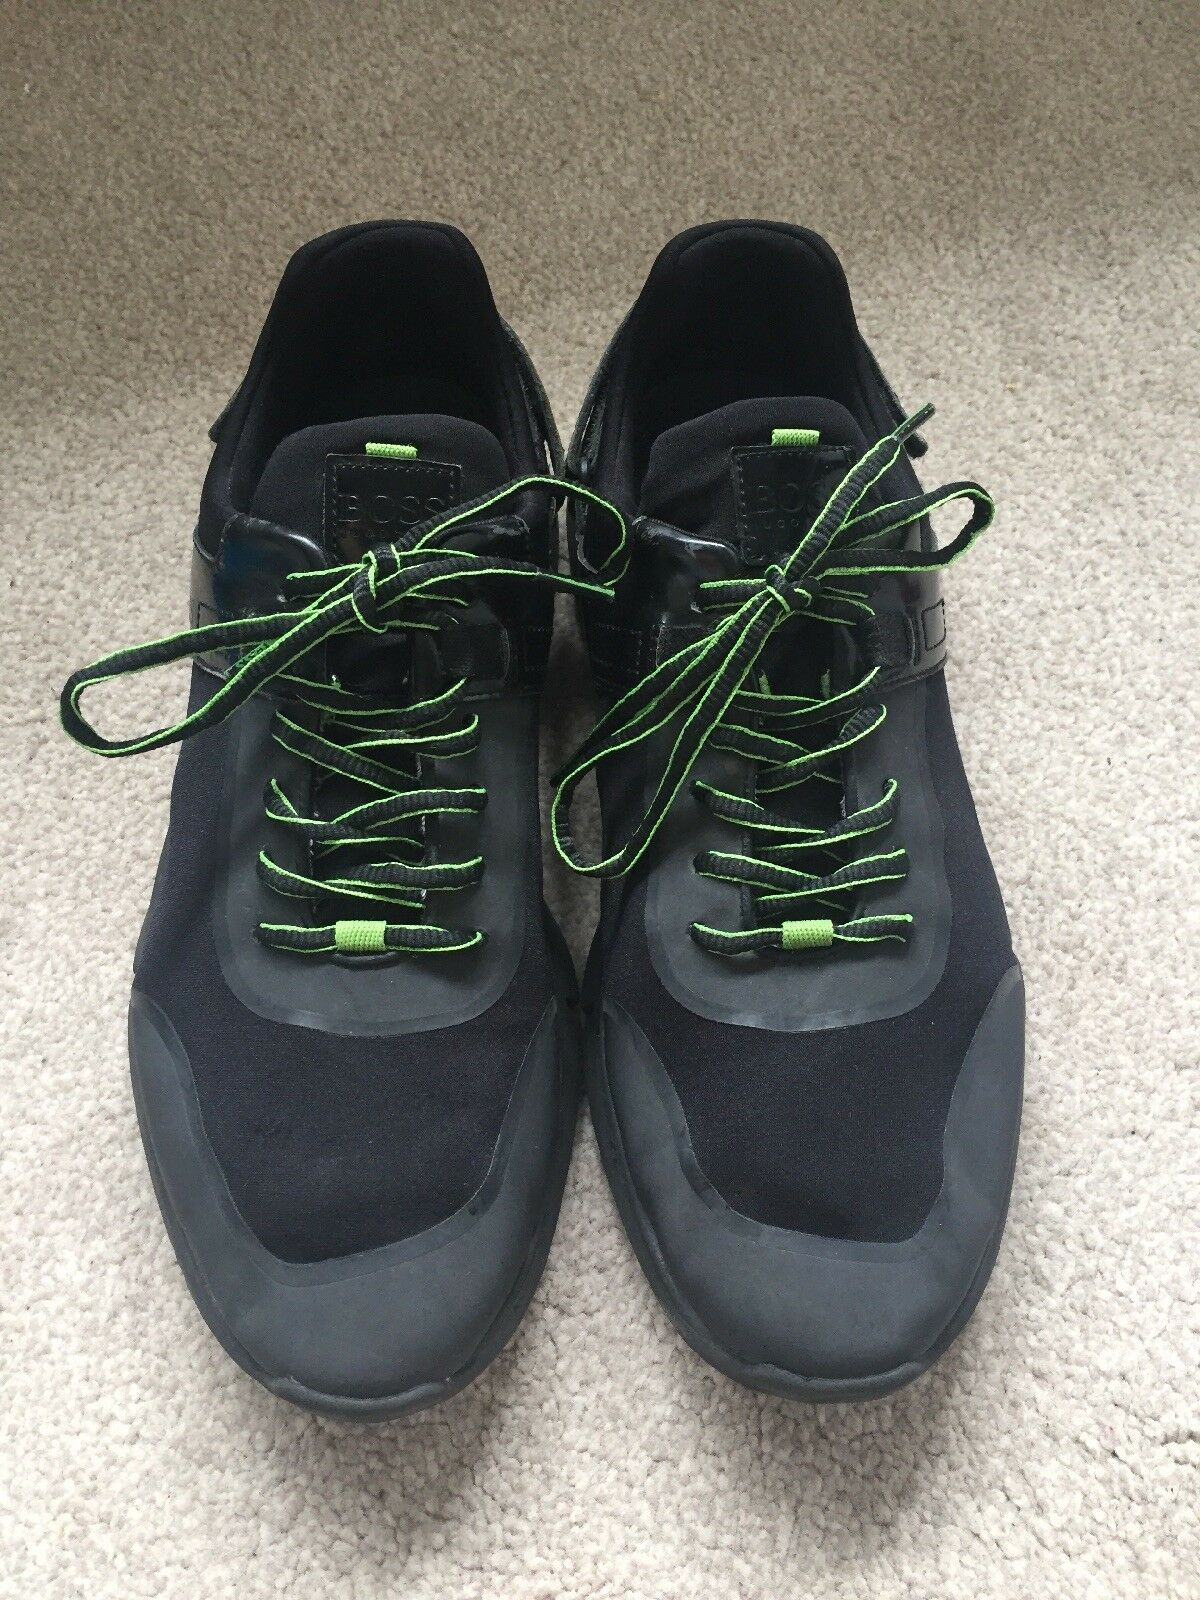 829e0fd677dc Hugo Boss Trainers. Size Green. Good Condition. 8. Lime nntfut2776 ...